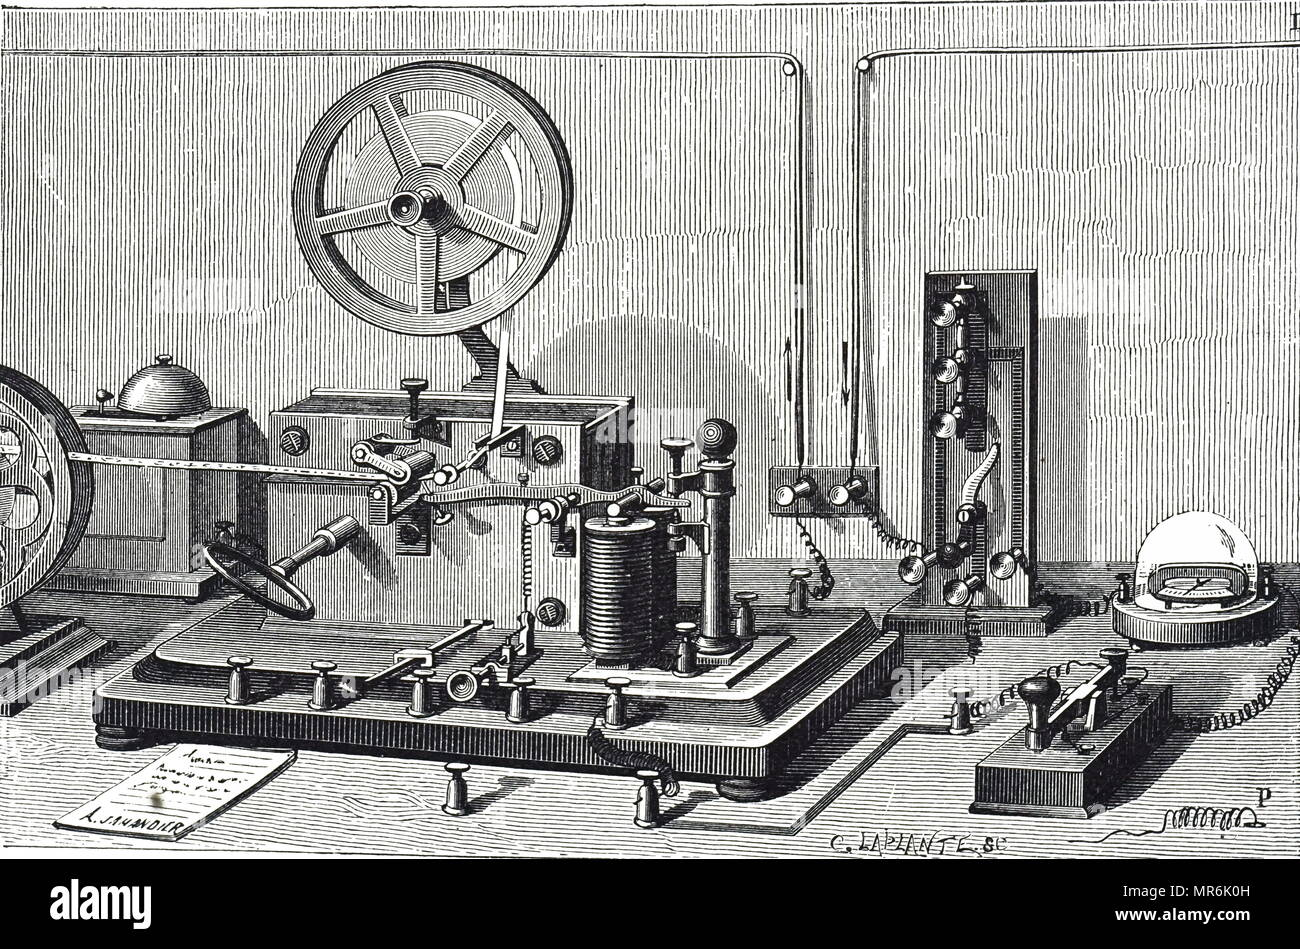 Engraving depicting a Morse-Digney printing telegraph equipment, showing the receiving instrument, left, and transmitting key, right foreground. Dated 19th century - Stock Image